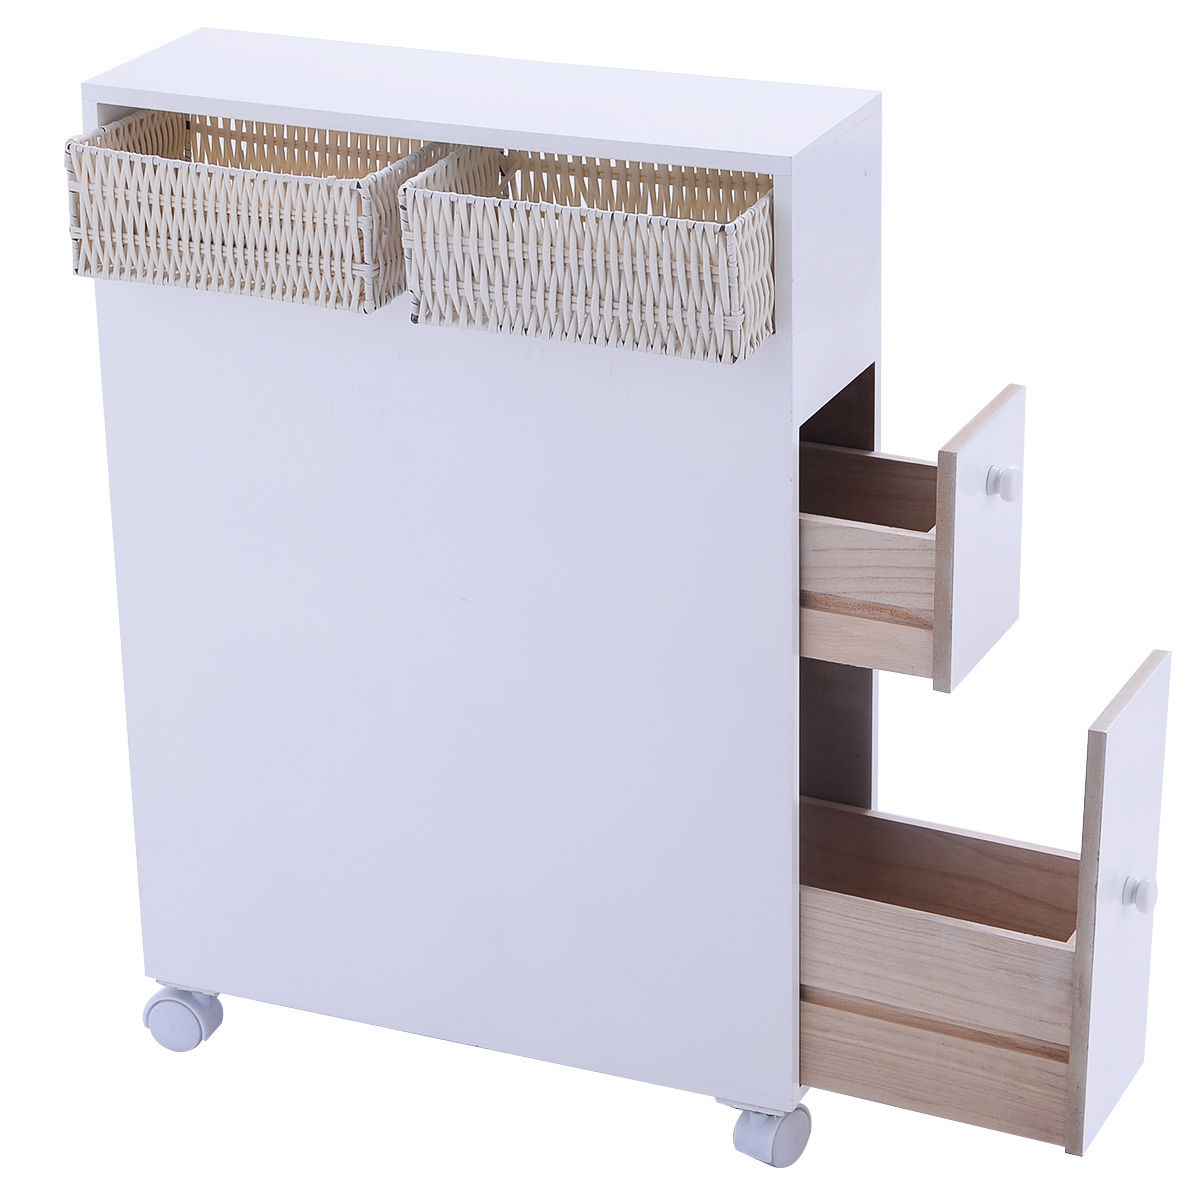 Superbe Costway Wood Floor Bathroom Storage Rolling Cabinet Holder Organizer Bath  Toilet White